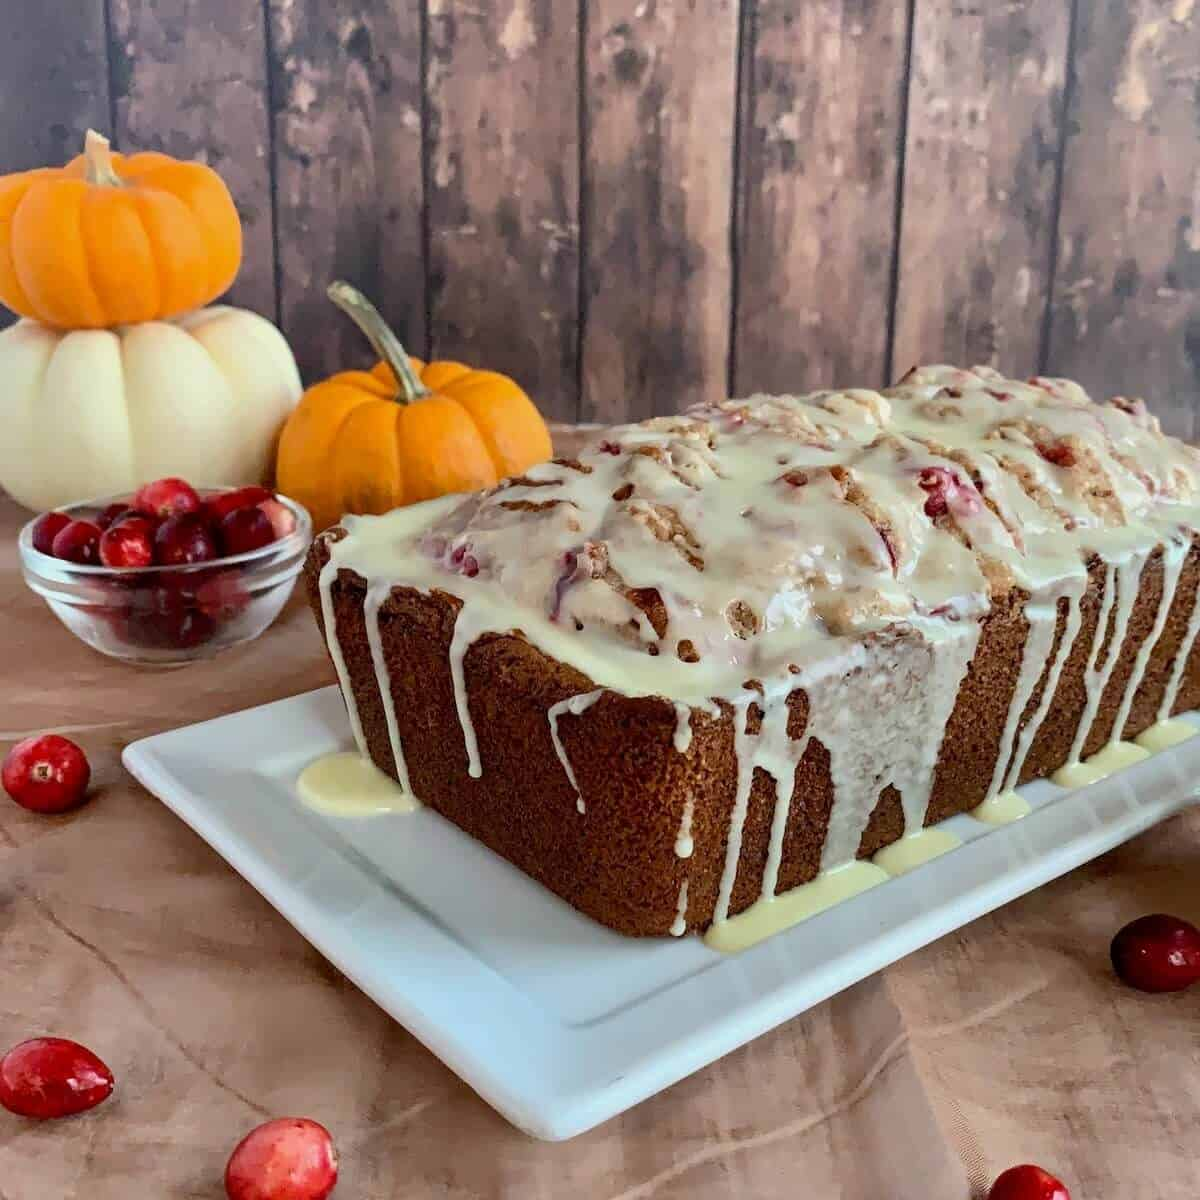 Glazed Orange Cranberry Bread on a white plate with pumpkins & cranberries in background.